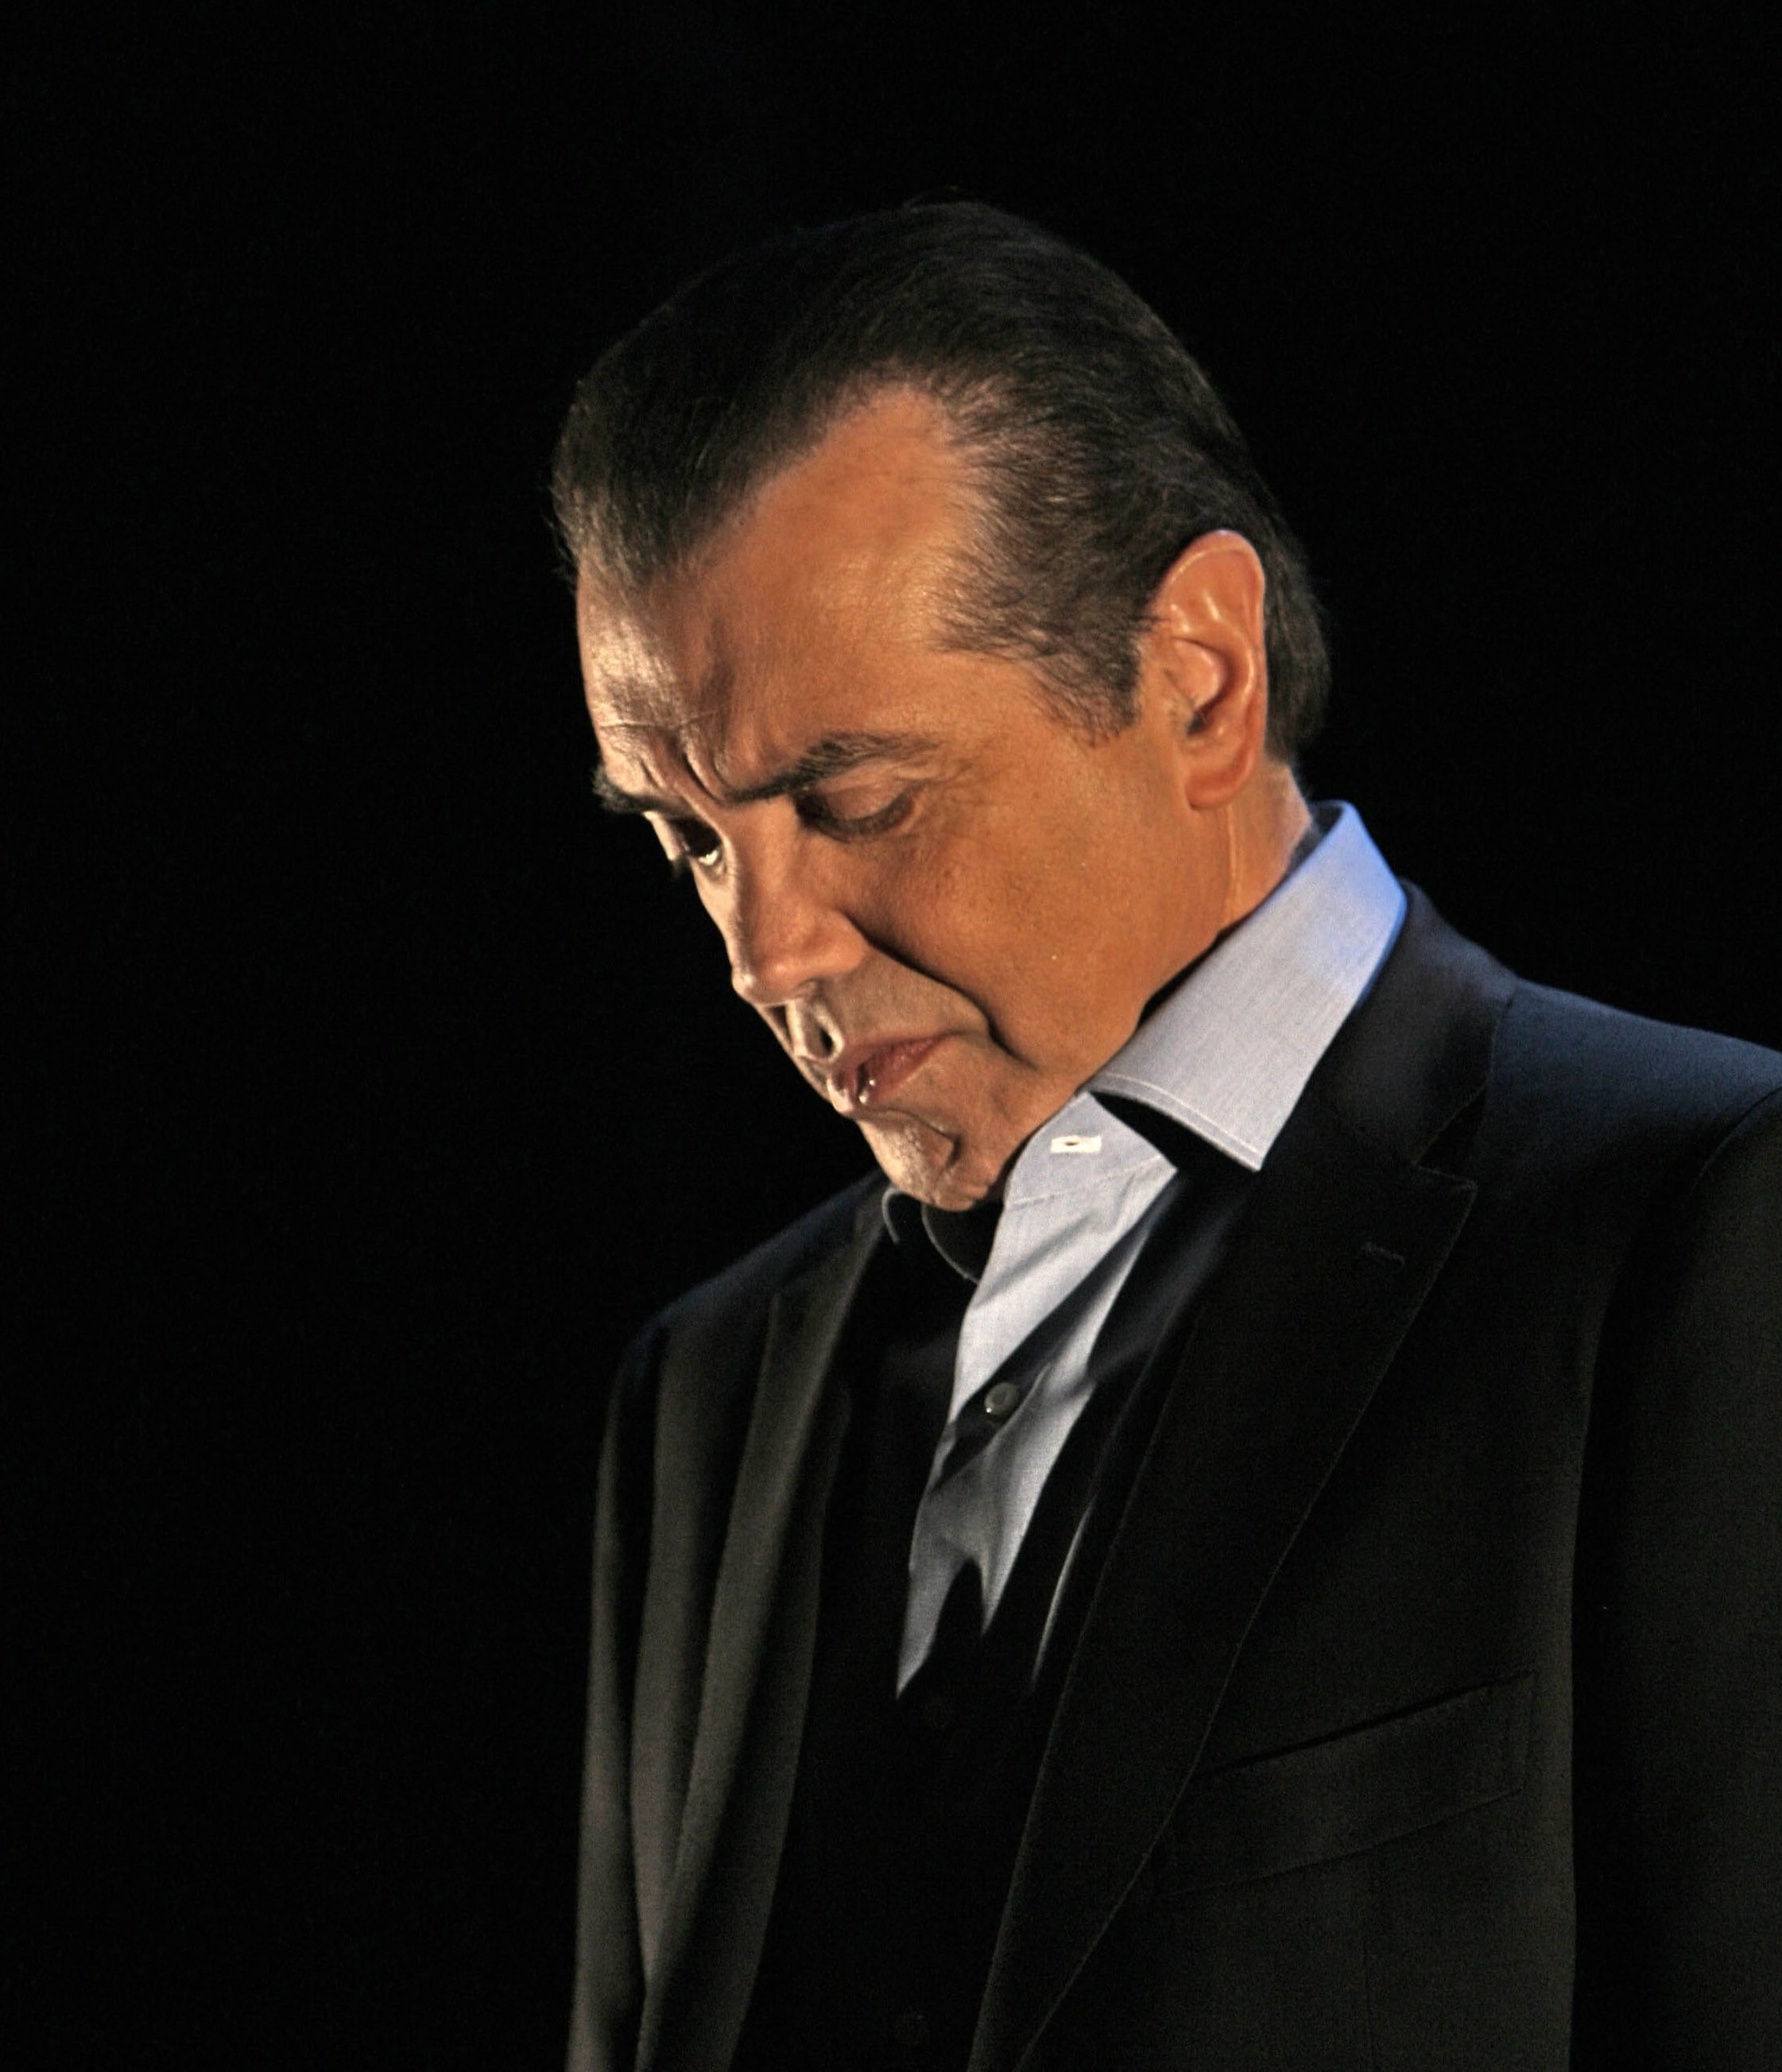 Chazz Palminteri For mobile